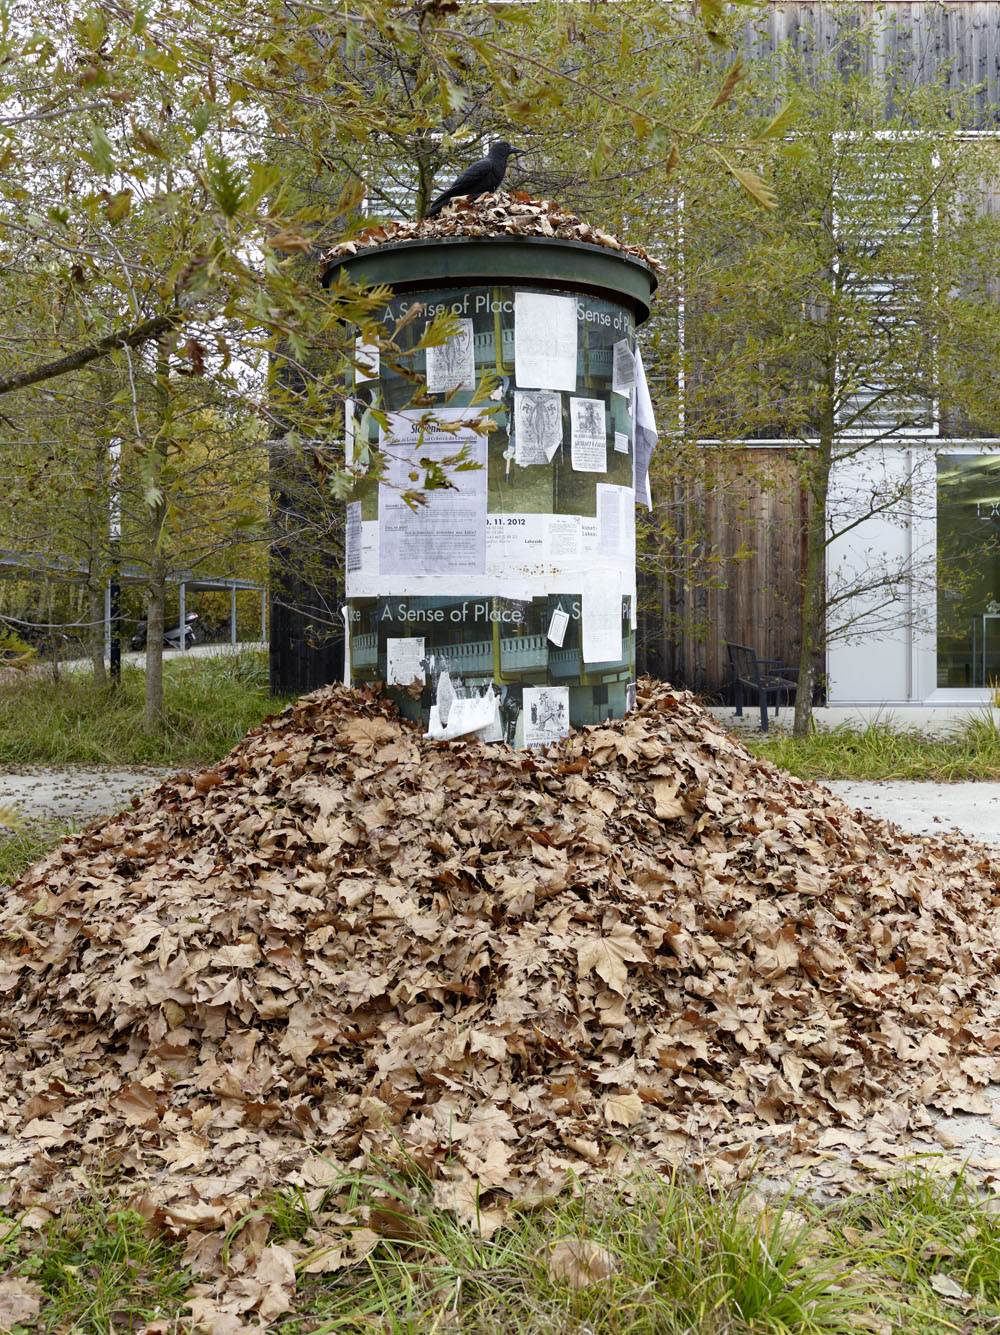 A Sense of Place (Gruppenausstellung), Kunstraum Lakeside, 2012 | Photo: Johannes Puch